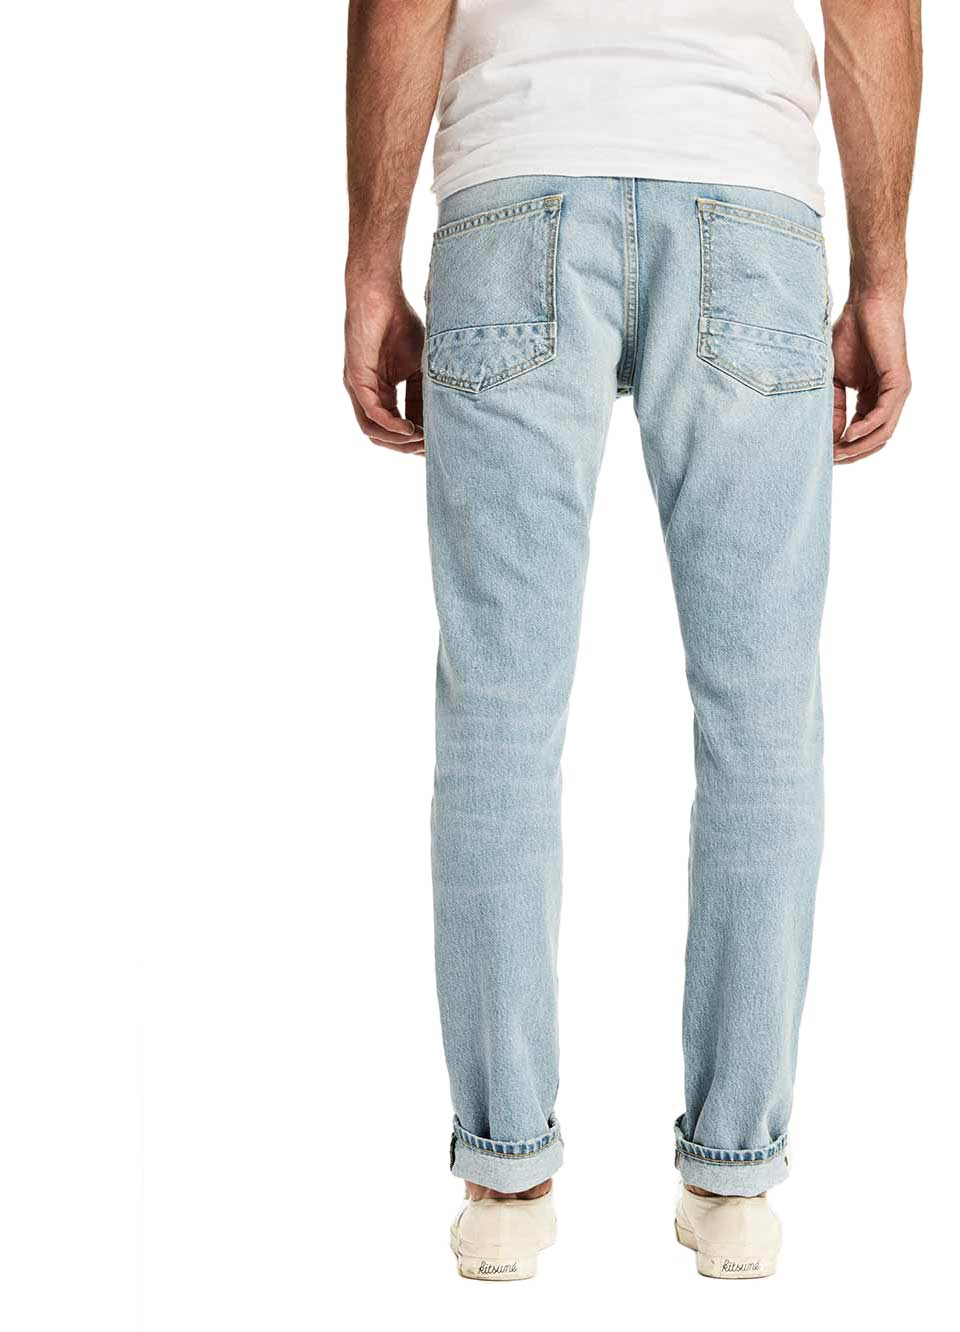 https://www.scotch-soda.com/nl/nl/heren/jeans/slim-fit/regular-slim-%E2%80%93-ralston